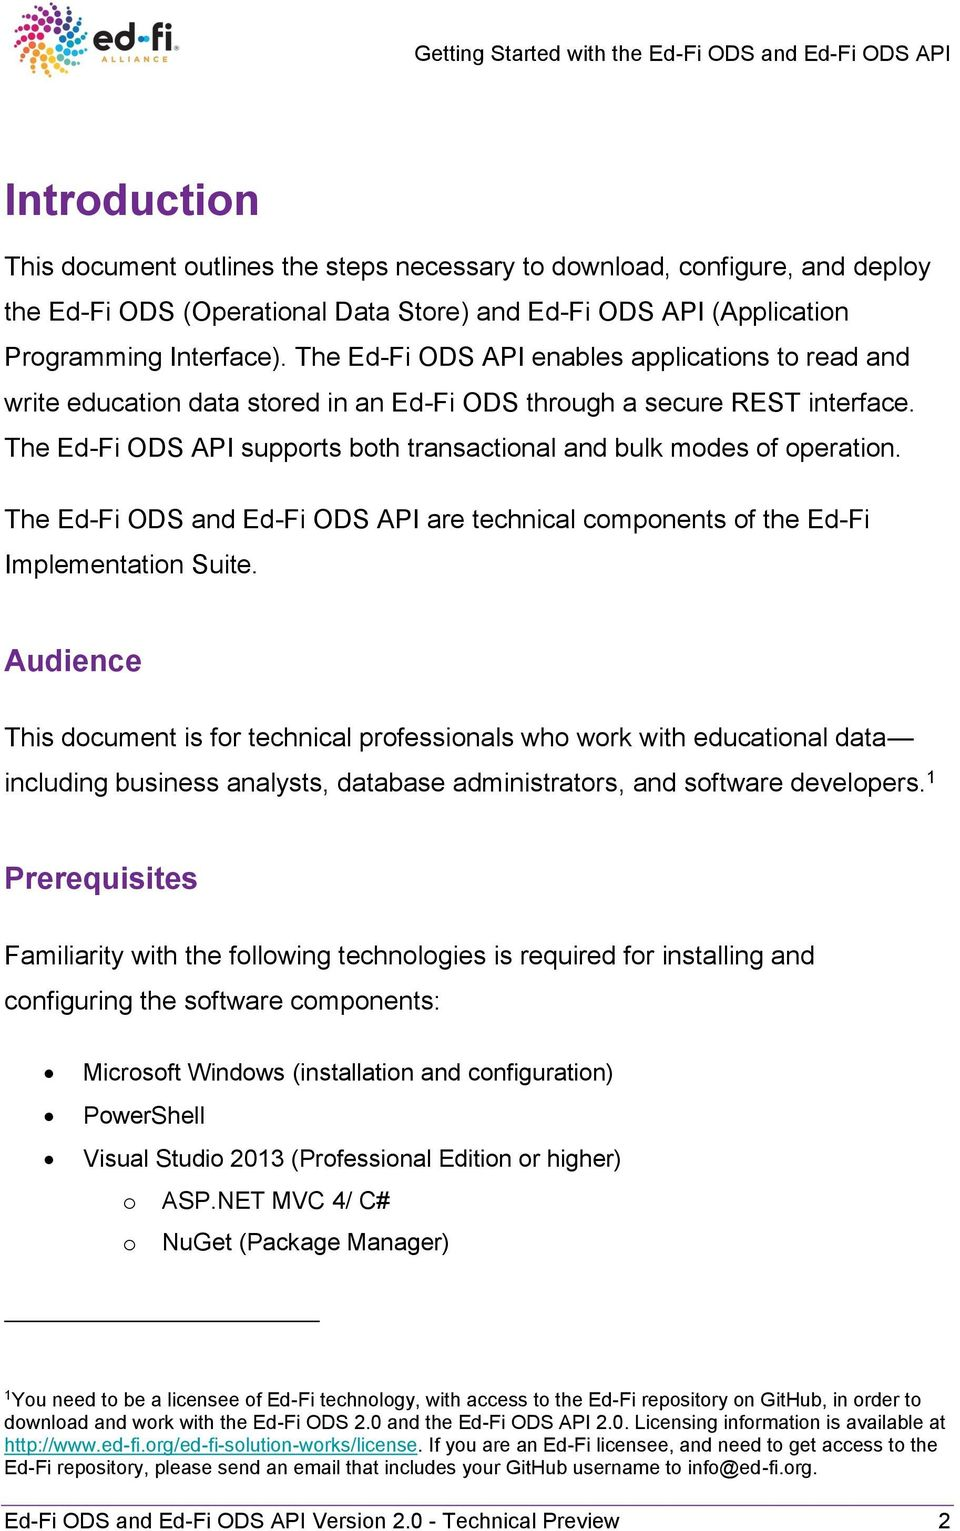 The Ed-Fi ODS API supports both transactional and bulk modes of operation. The Ed-Fi ODS and Ed-Fi ODS API are technical components of the Ed-Fi Implementation Suite.